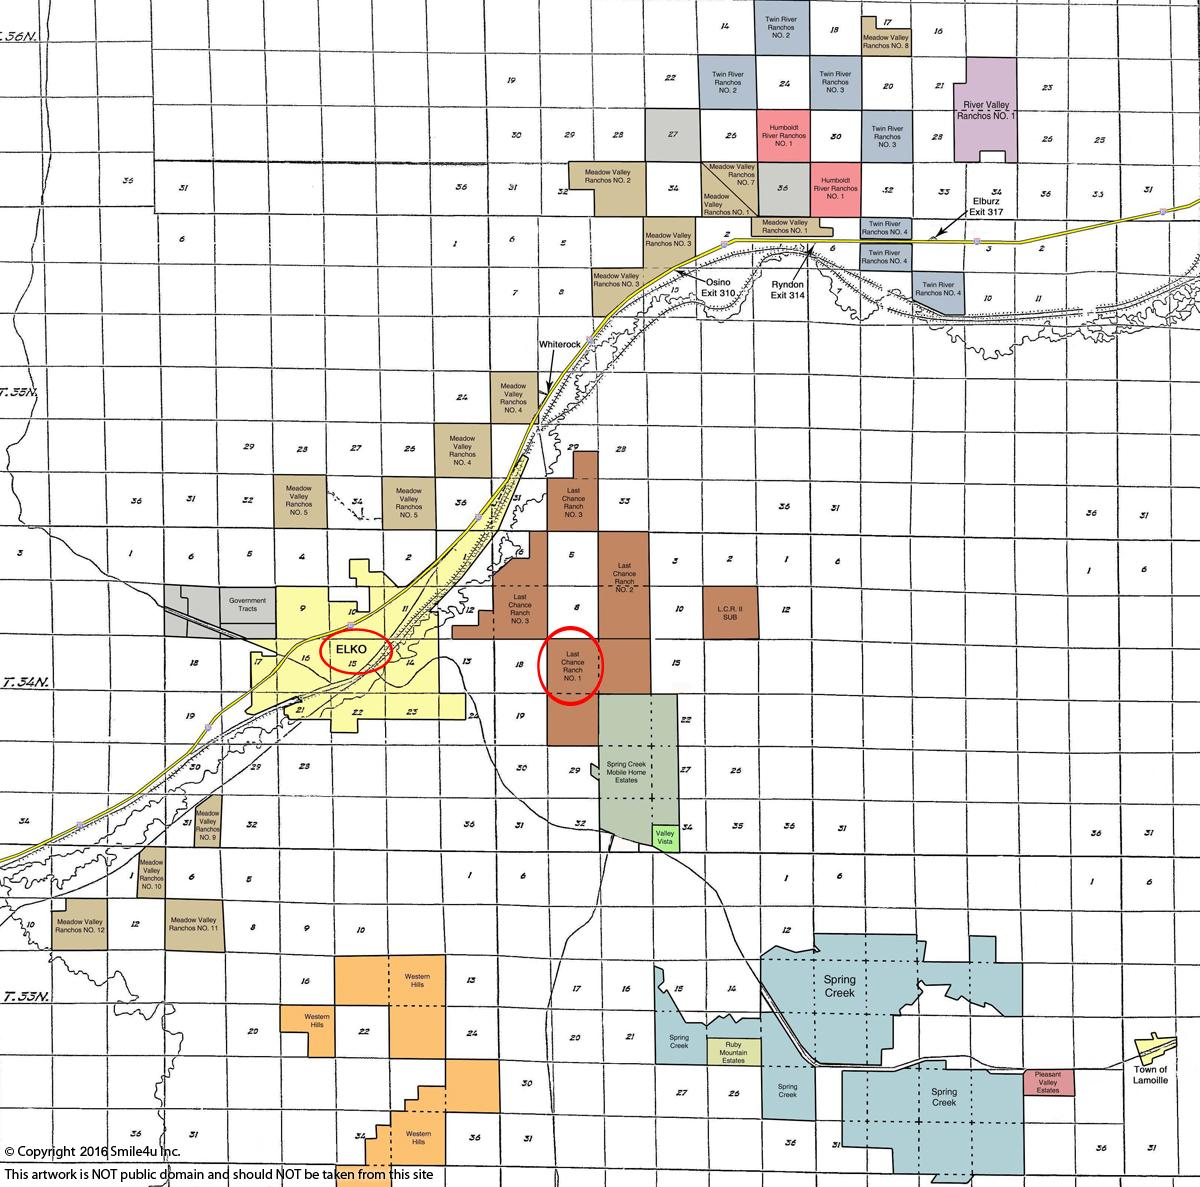 430189_watermarked_Color- Elko - T & R, Section, Subdivision Map 18x24.jpg